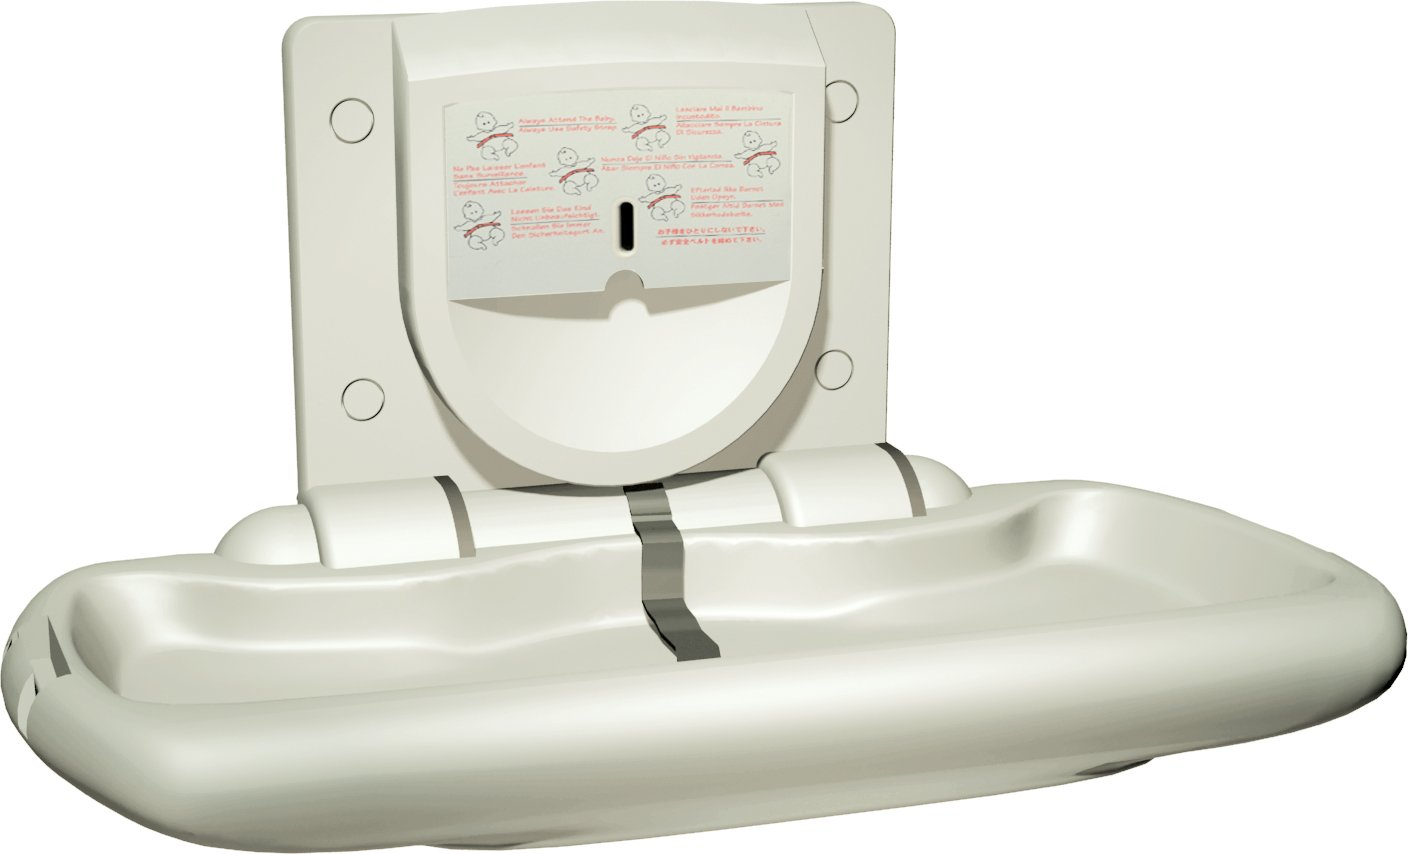 ASI 9012 Surface Mounted Baby Changing Station by ASI